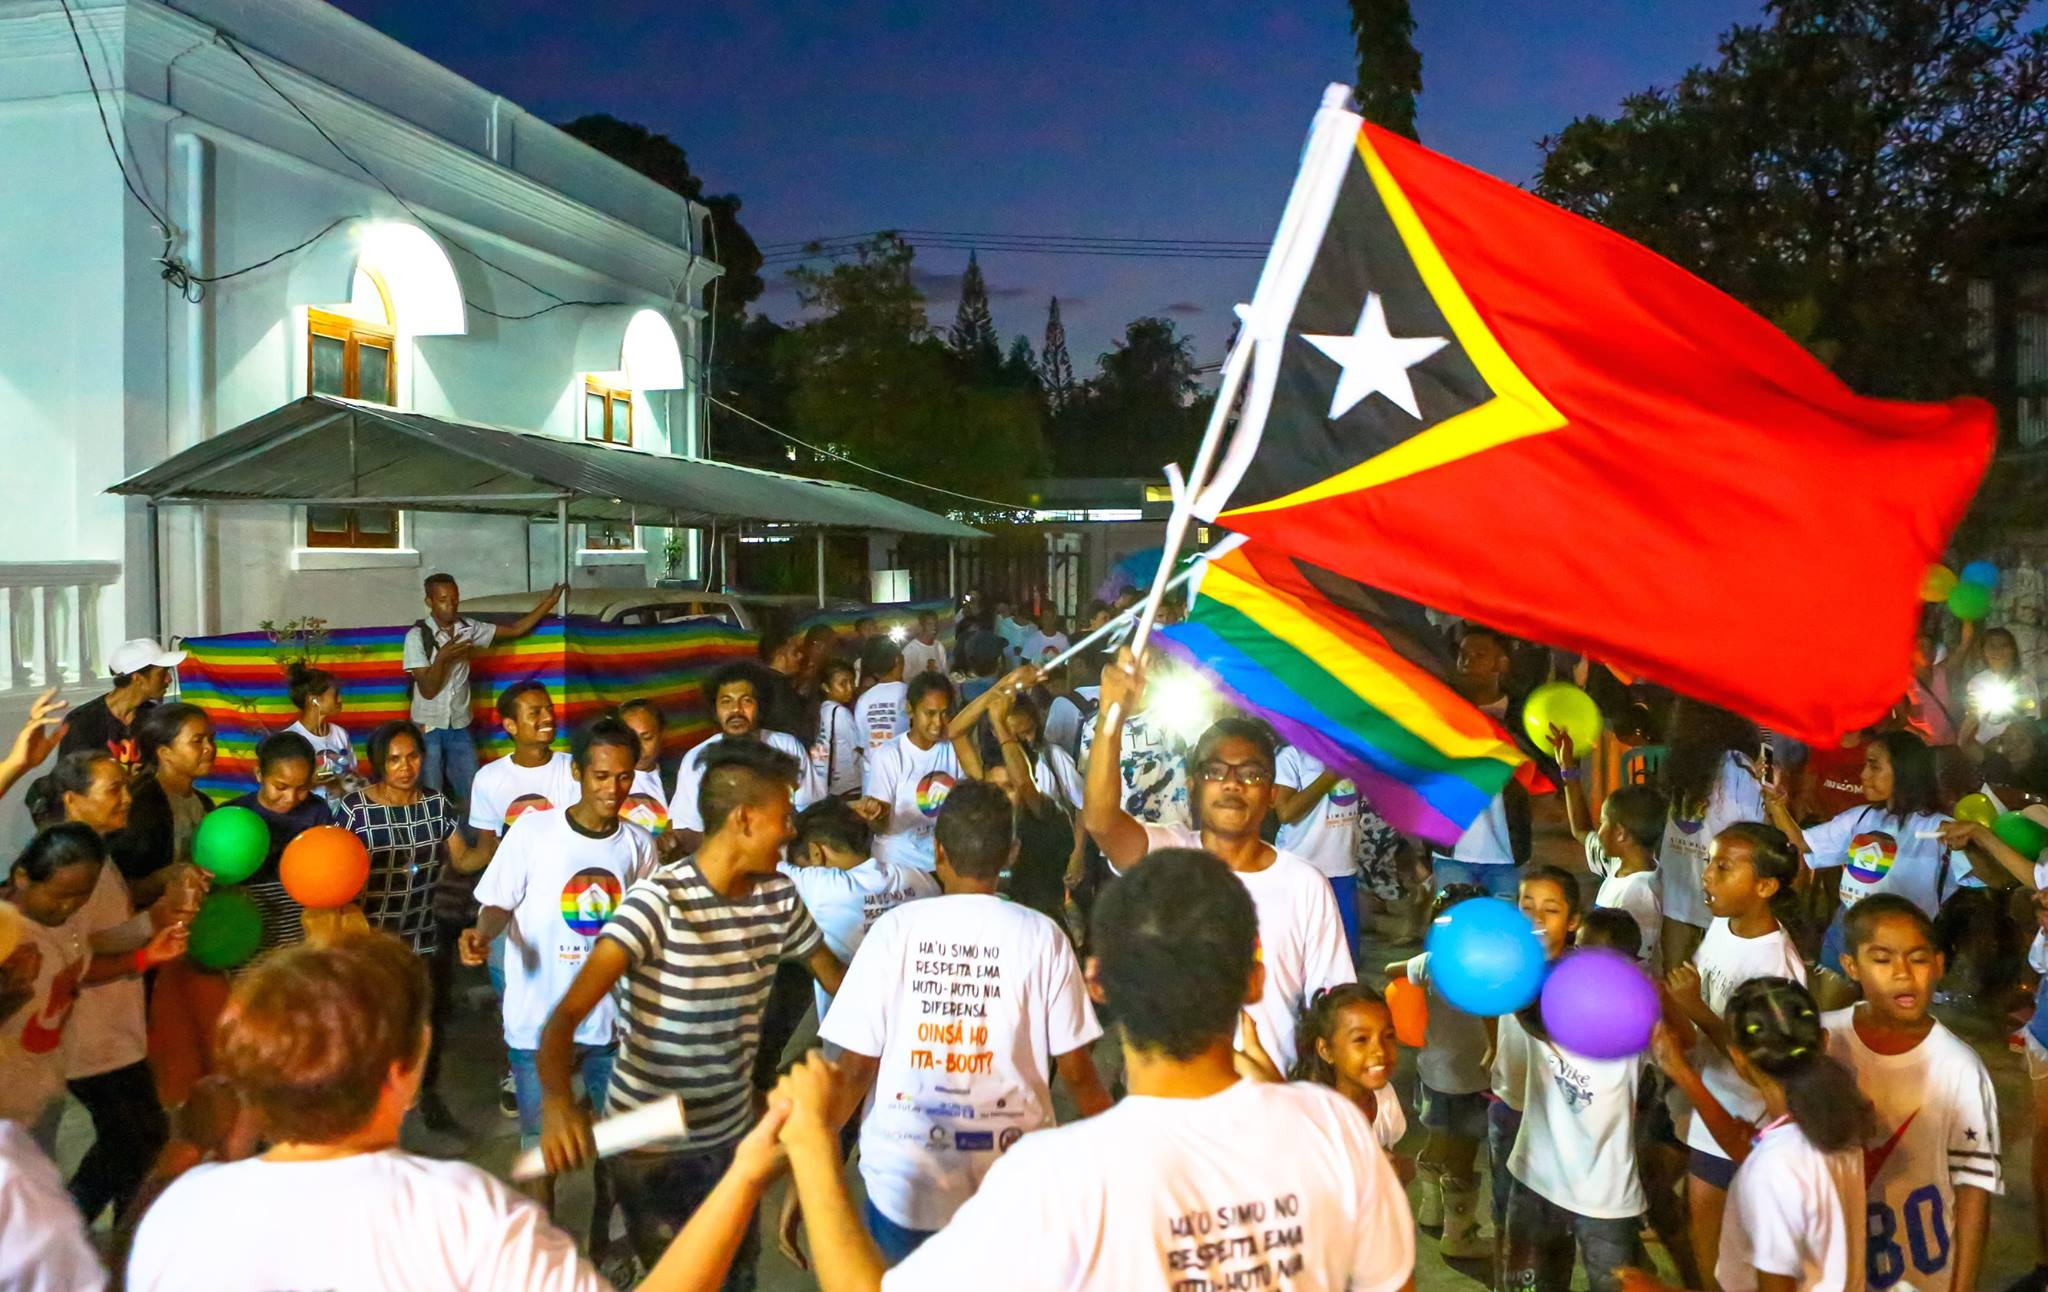 people standing outside a building at night dancing and celebrating. one person is waving a big east timor flag and the other is holding a rainbow flag